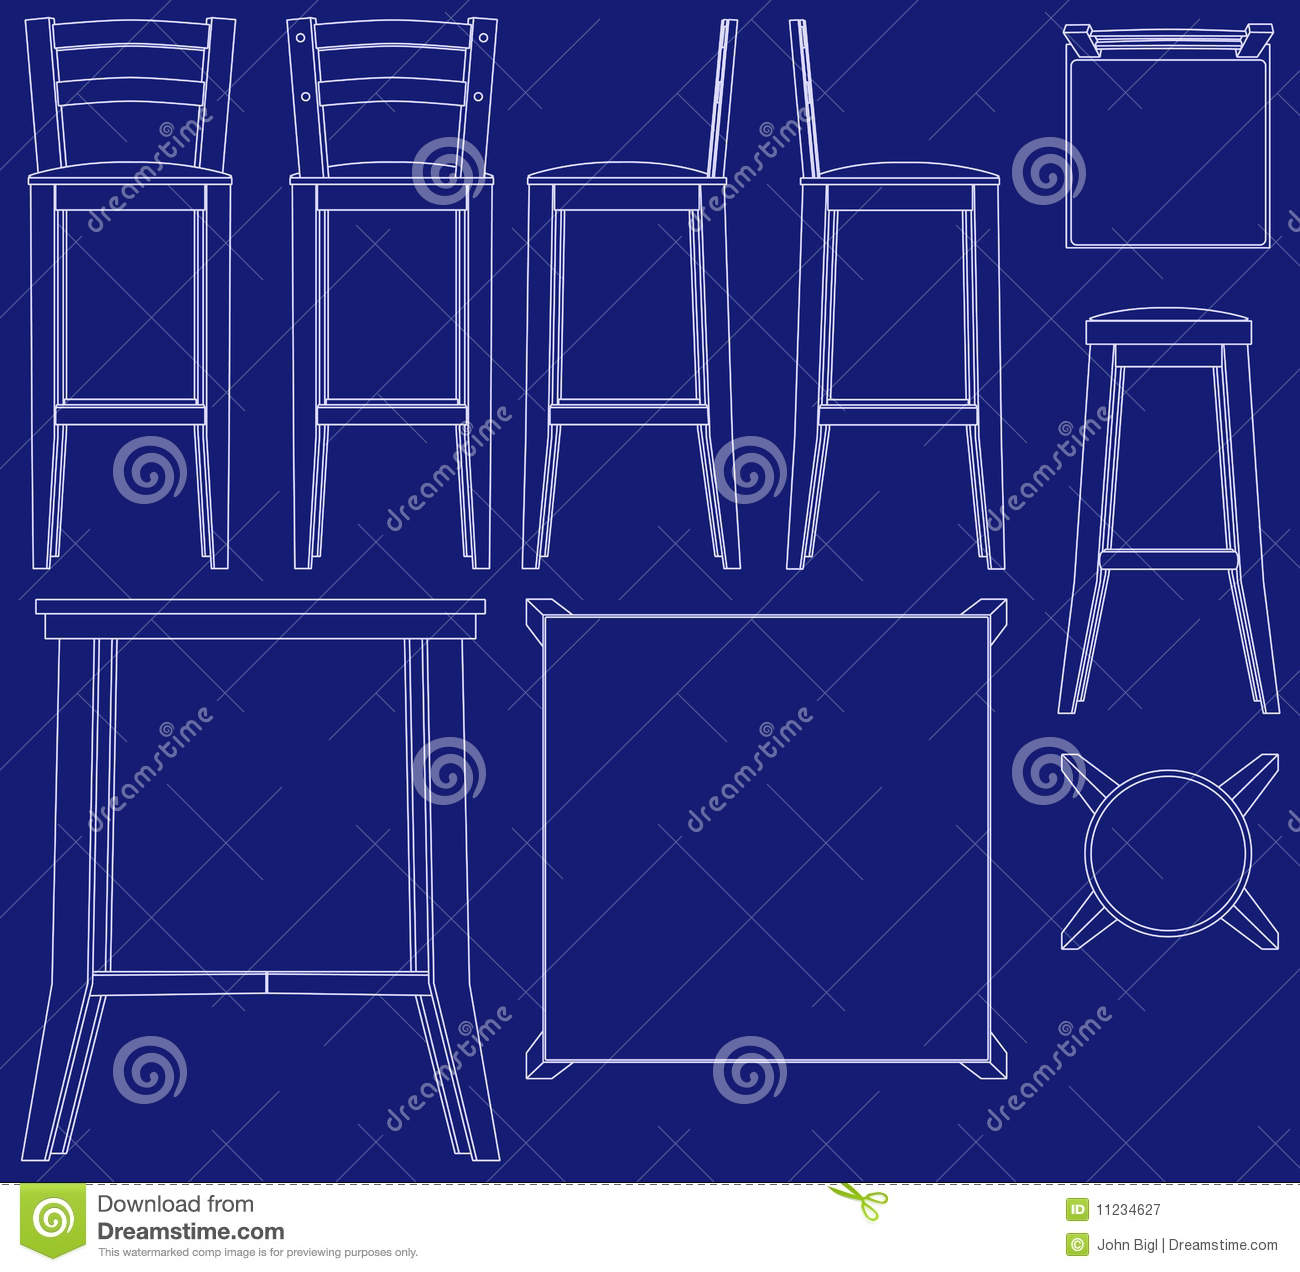 Blueprint bar furniture illustrations stock vector illustration of blueprint bar furniture illustrations malvernweather Choice Image